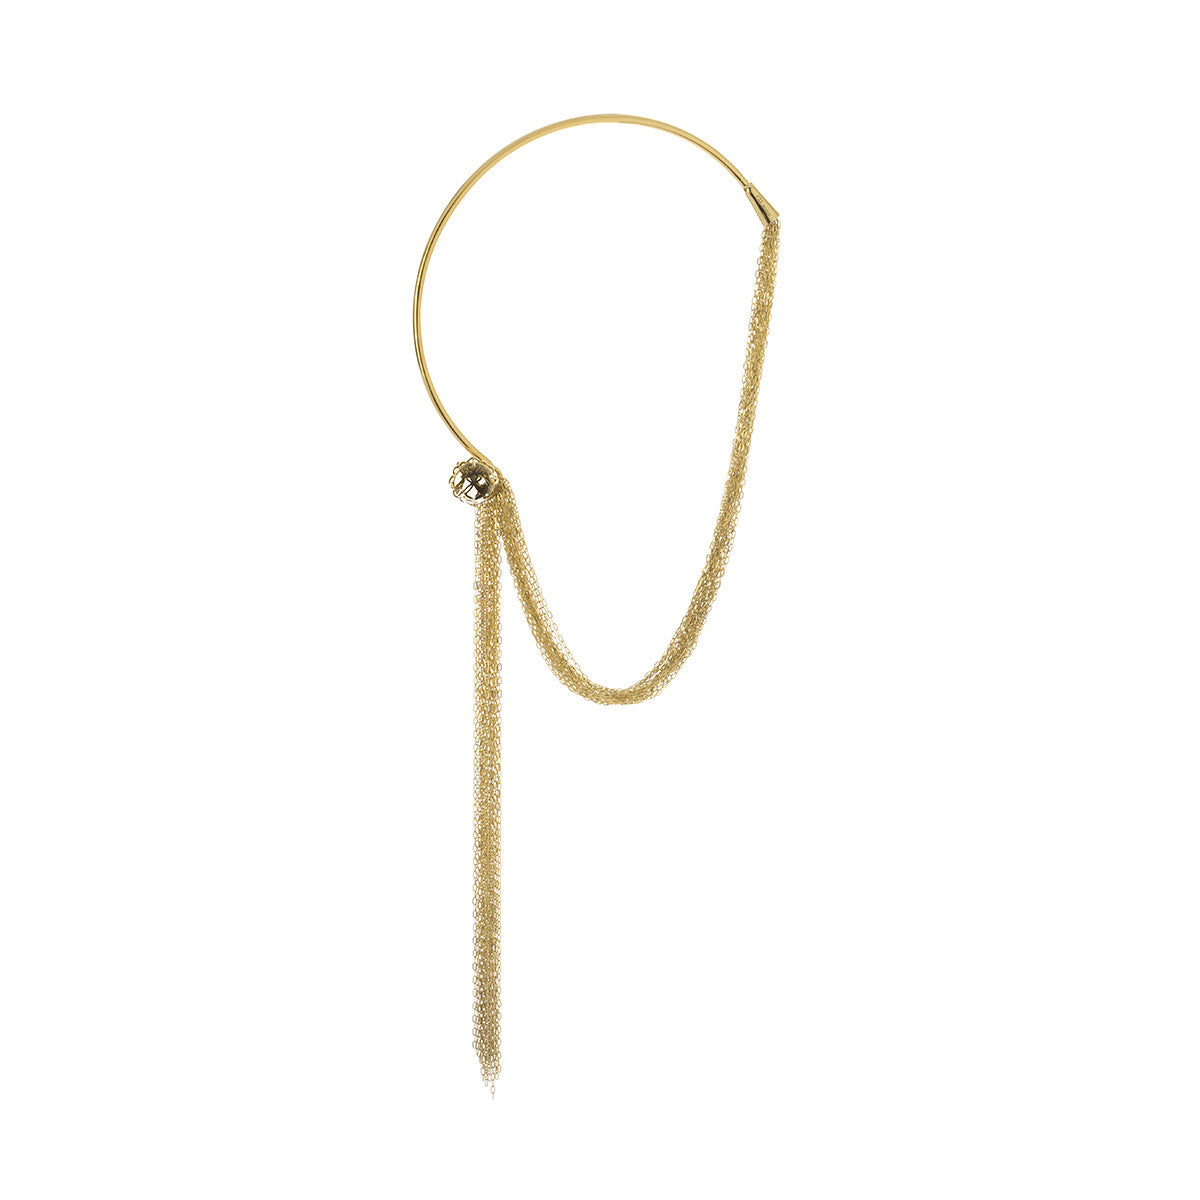 Signature Gold Boton Long Crystal Necklace - MCK Brands